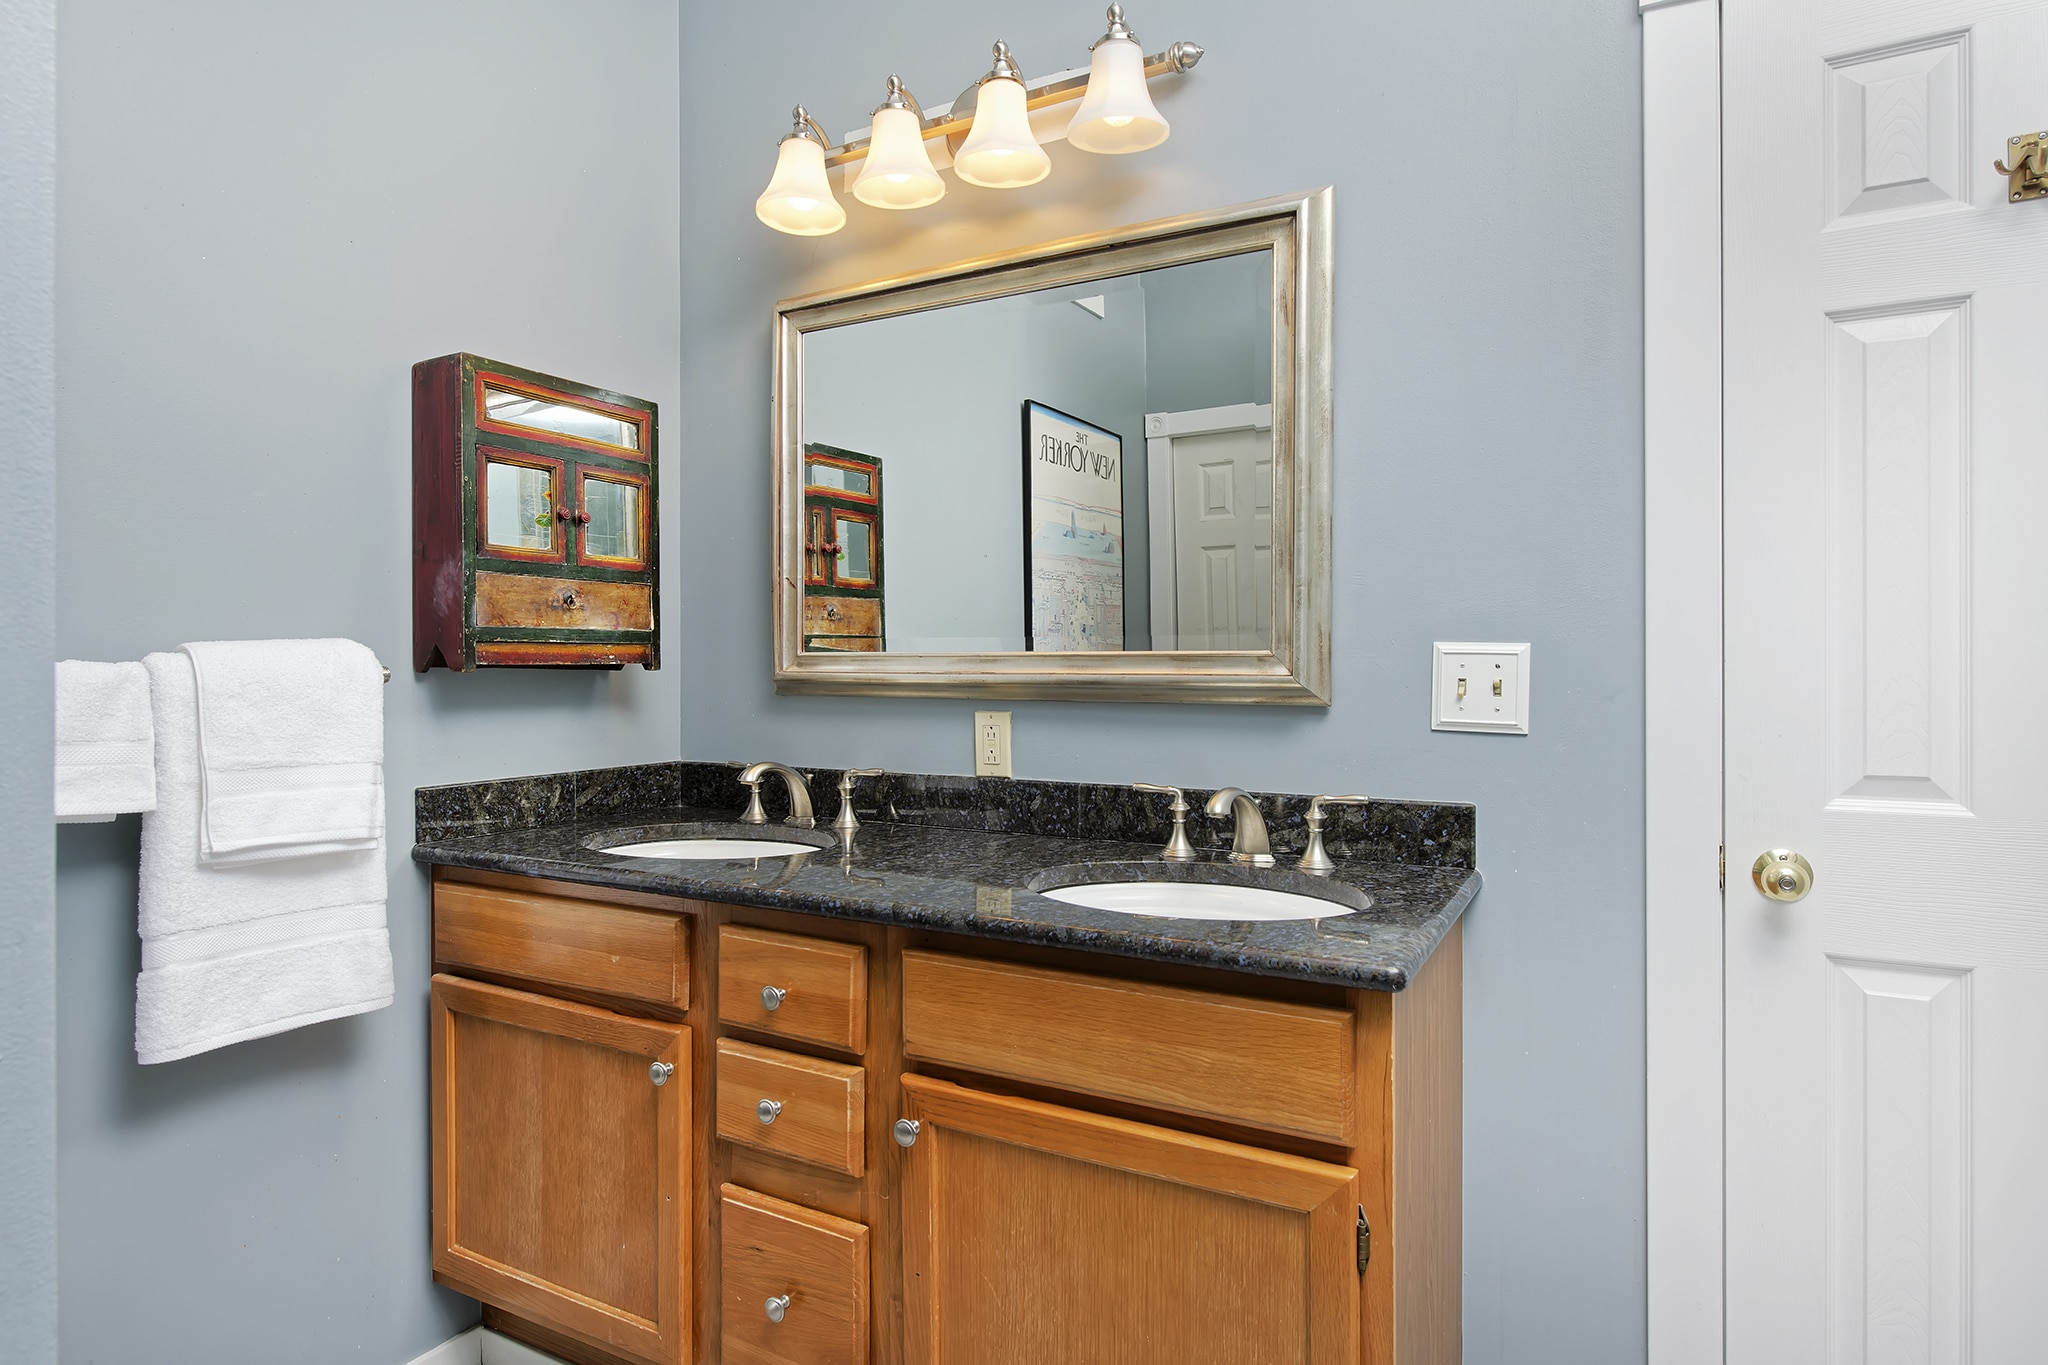 Washington Park Home for sale with double vanity and granite counters